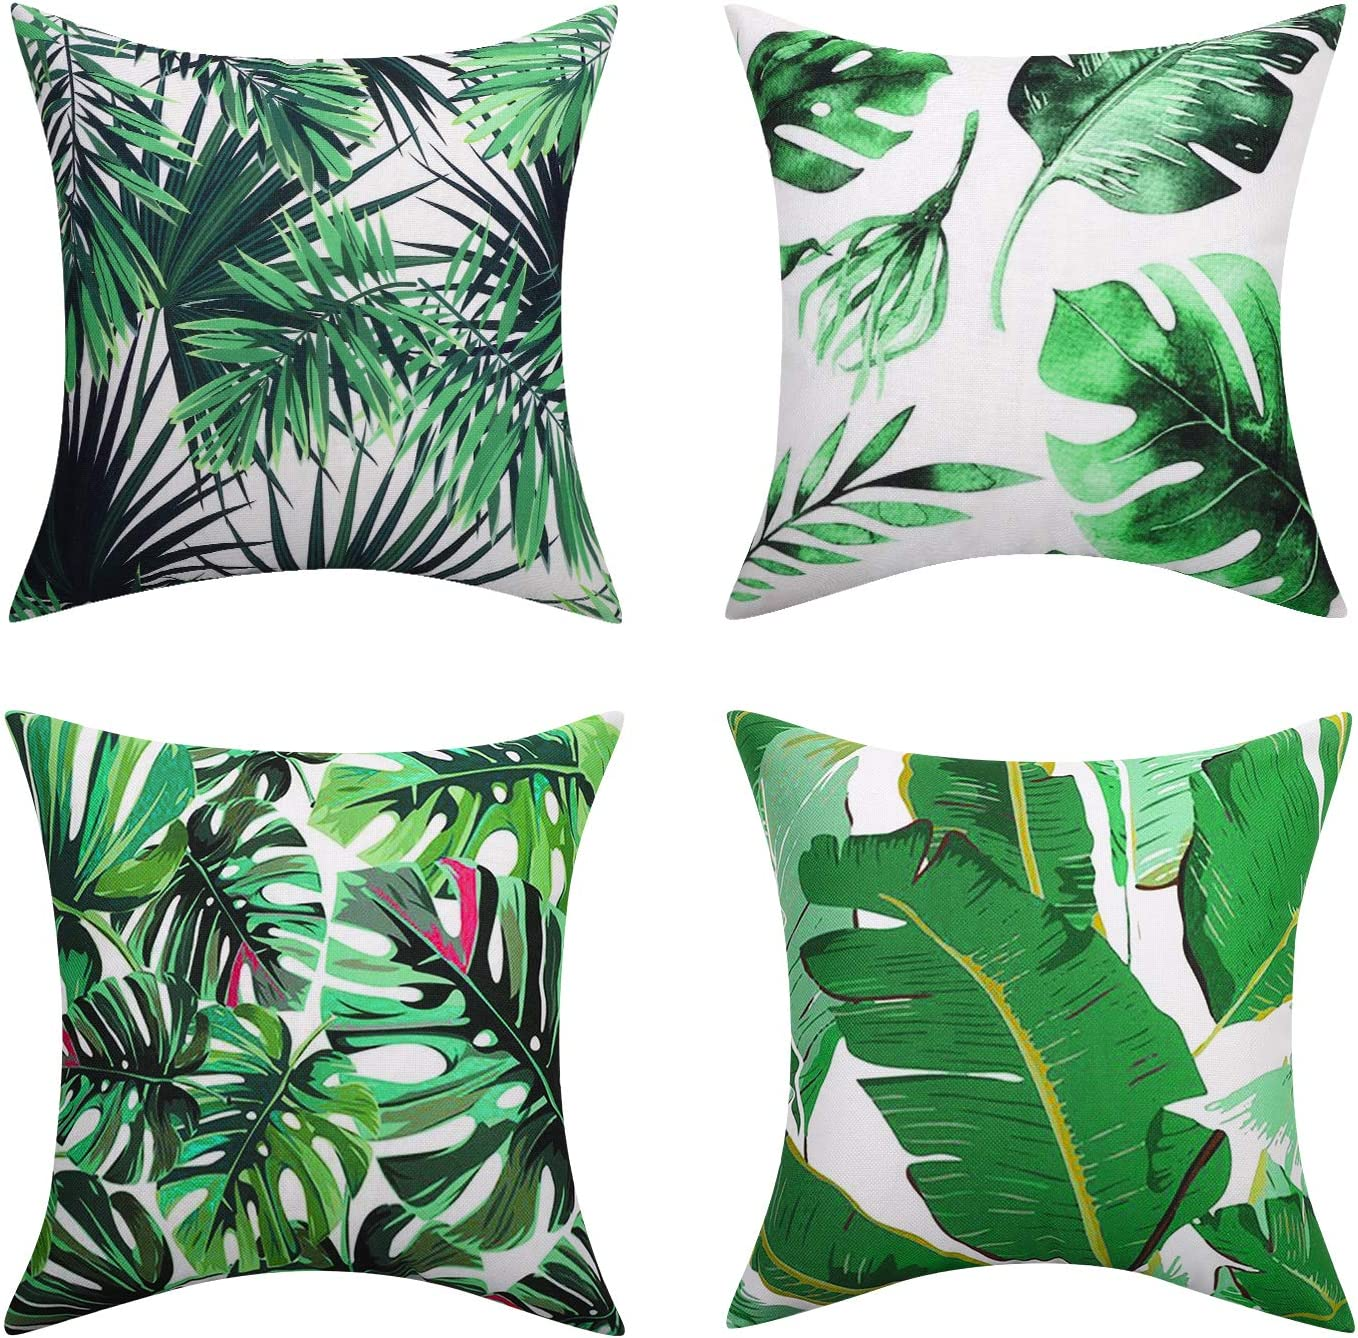 Animal Fantasy Set of 4 Soft Breathable Wrinkle-resistant Pillowcase with Colorful Printed Pattern Throw Pillow Case Sham for Sofa Bed Seat 18x18 Lewondr Linen Cushion Cover 45x45cm